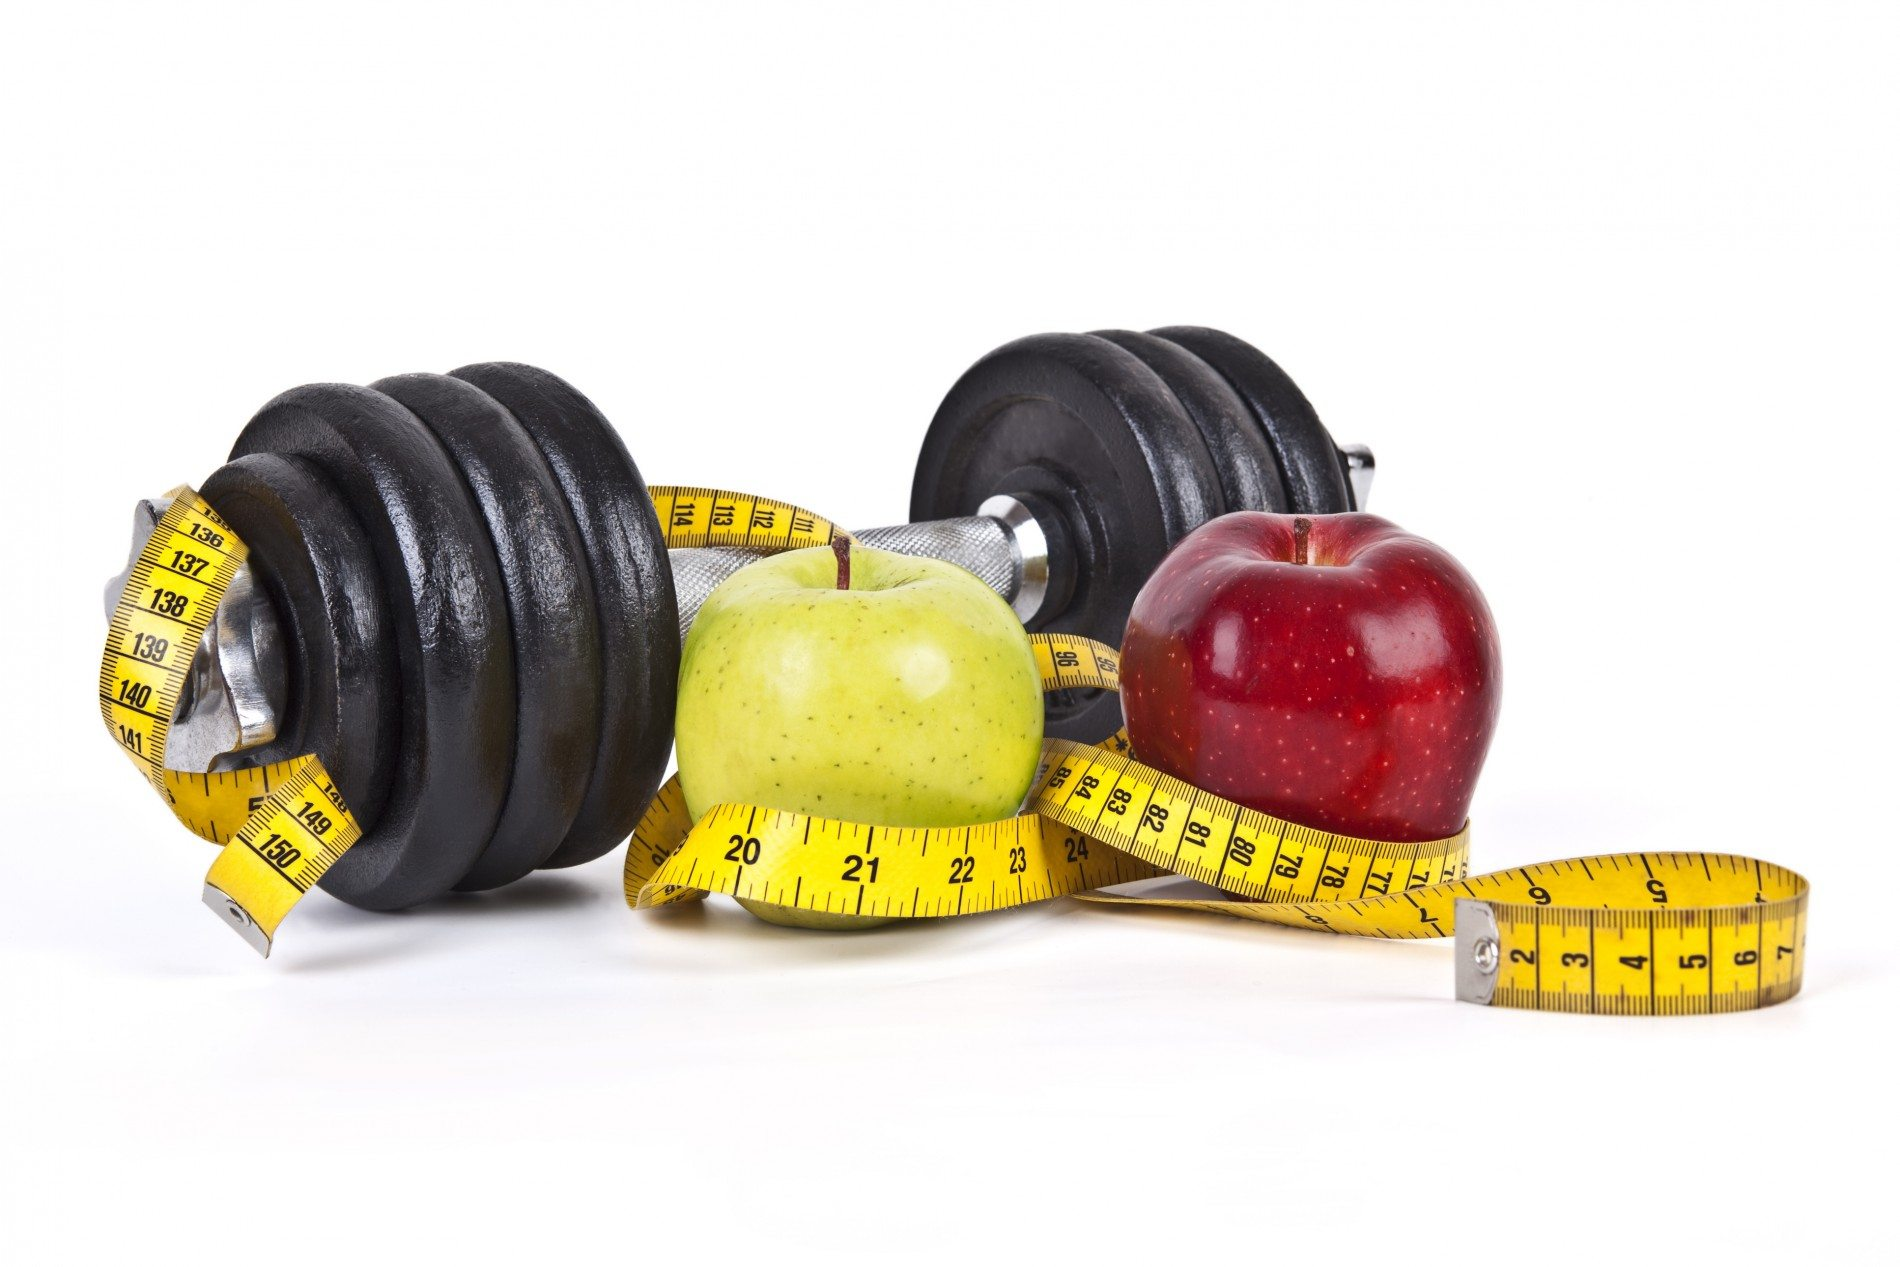 A dumbbell, two apples and a tape measure